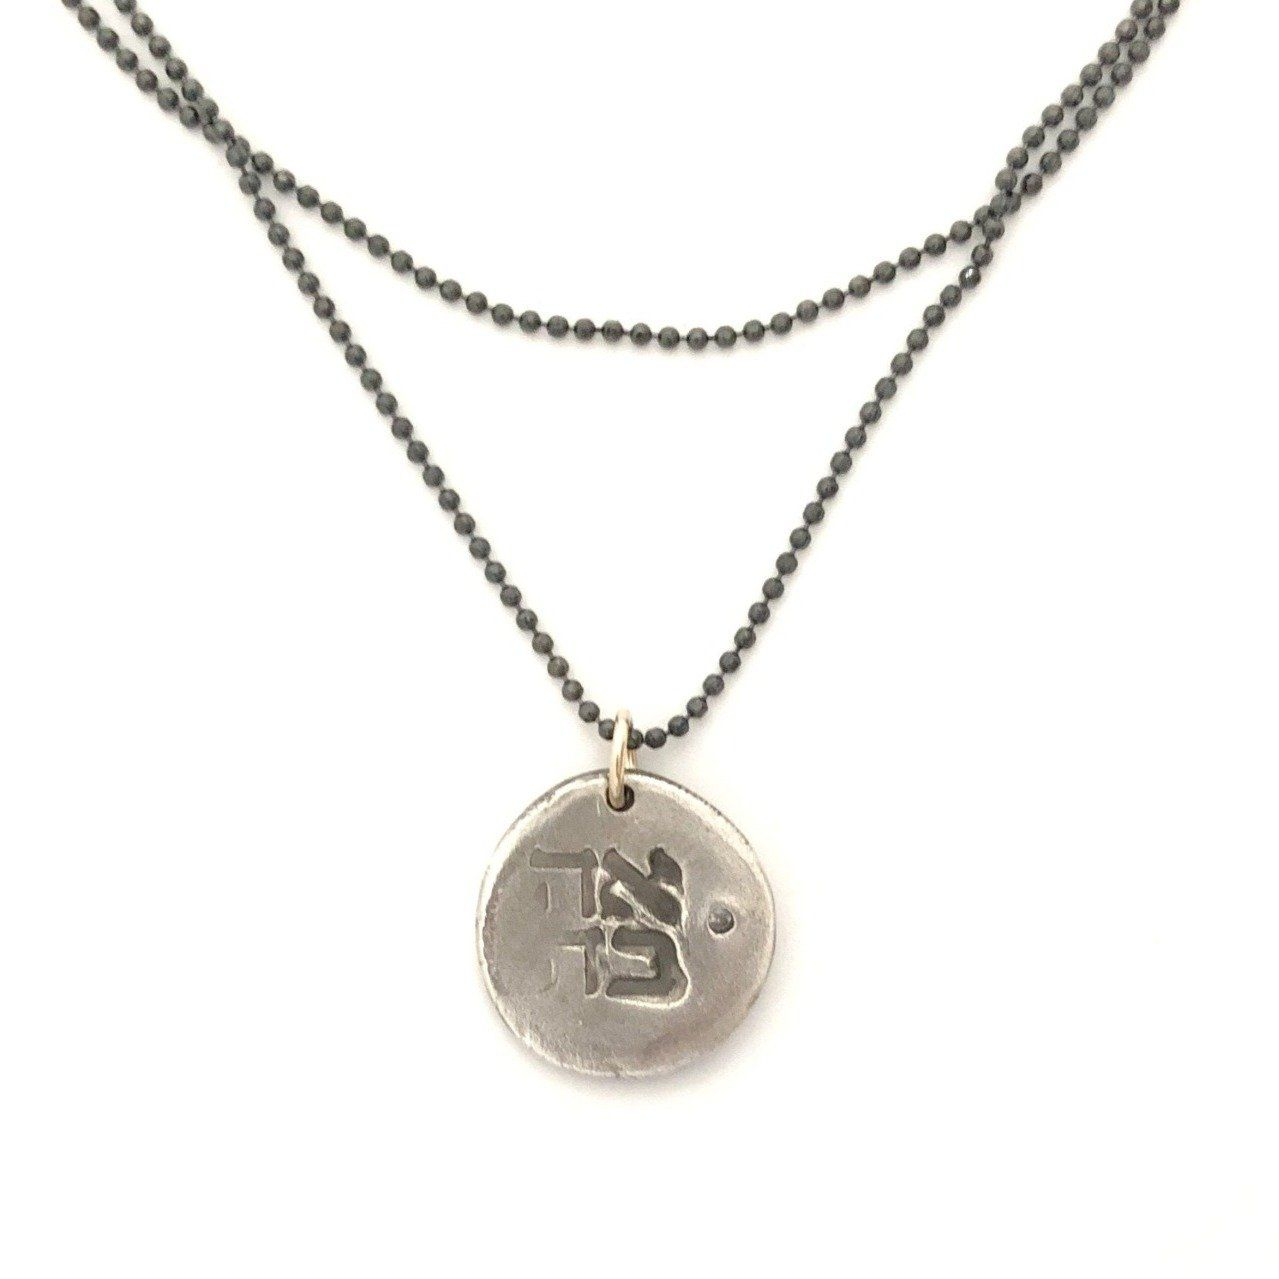 """Hand made silver Ahava (Love in Hebrew) charm hangs on a 36"""" oxidized ball chain. The charm has been darkened to bring out the lettering and give it depth. The bail is gold-filled. Can be worn long or doubled around the neck. We love this mix metal look. Choose love in English, Hebrew or Spanish. Have another love language? Let us know! Charm is silver with a crystal and measures about 20mm round. Your order will take about a week, or less, to ship. If it will take longer we will be in touch wit"""